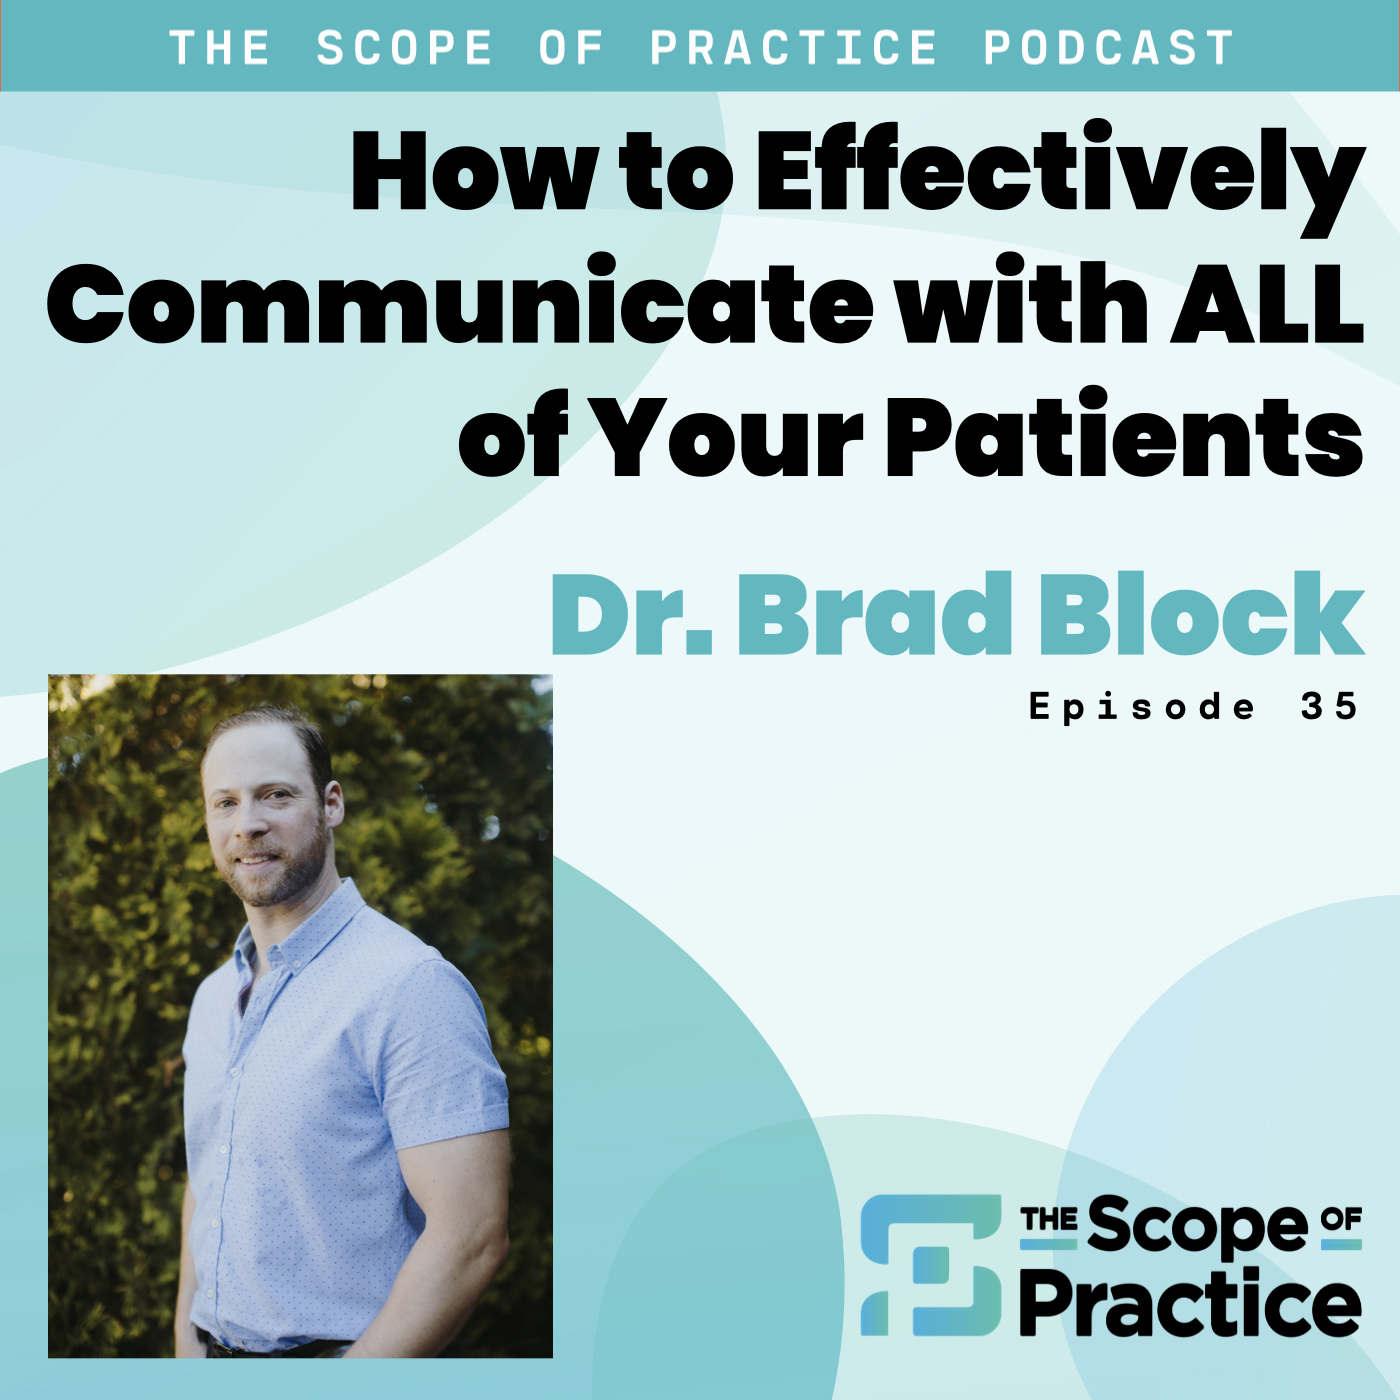 effectively communicate with Dr. Brad Block